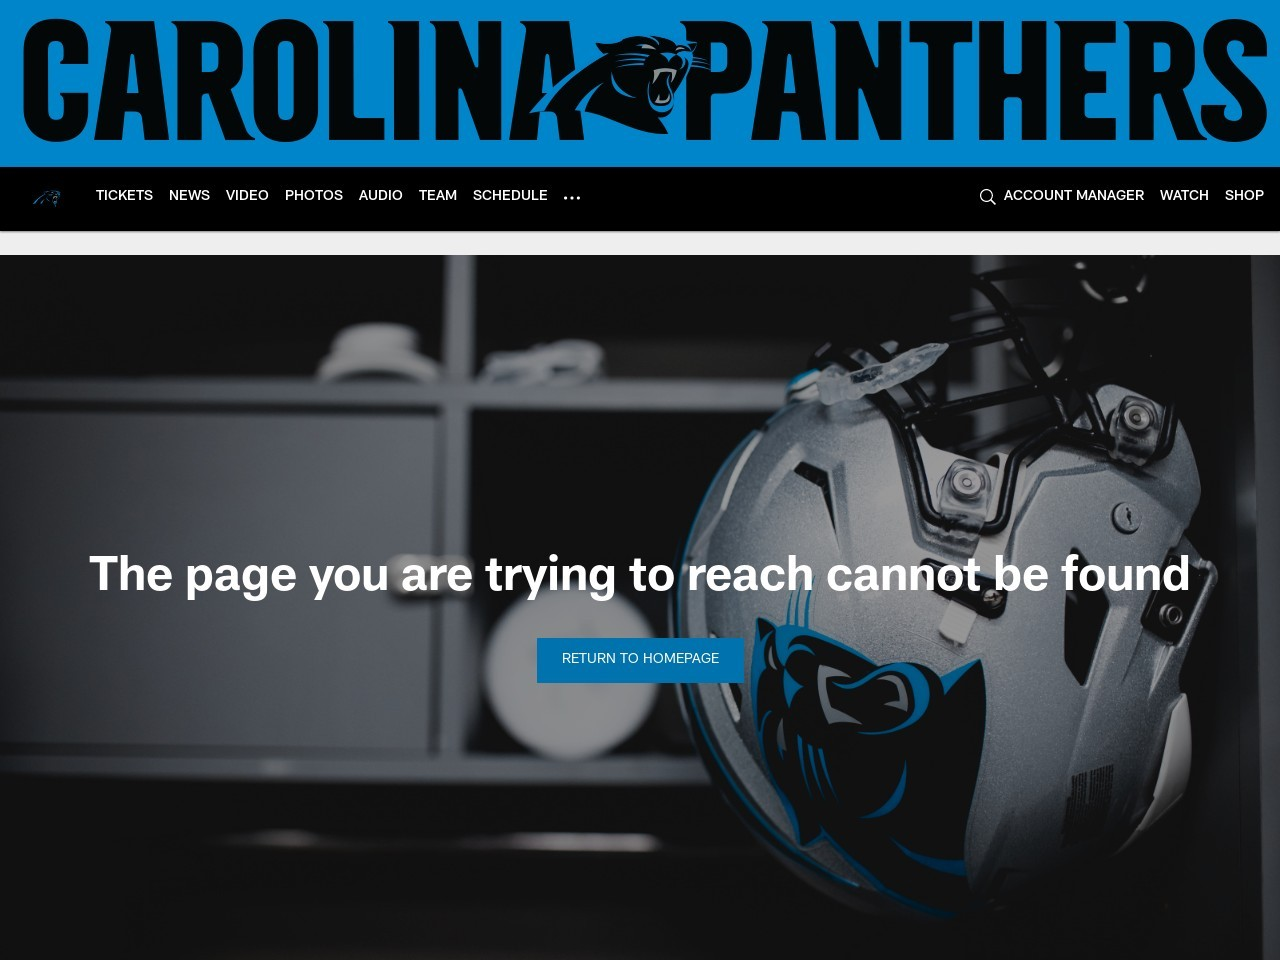 Panthers embark on USO/NFL tour to Germany